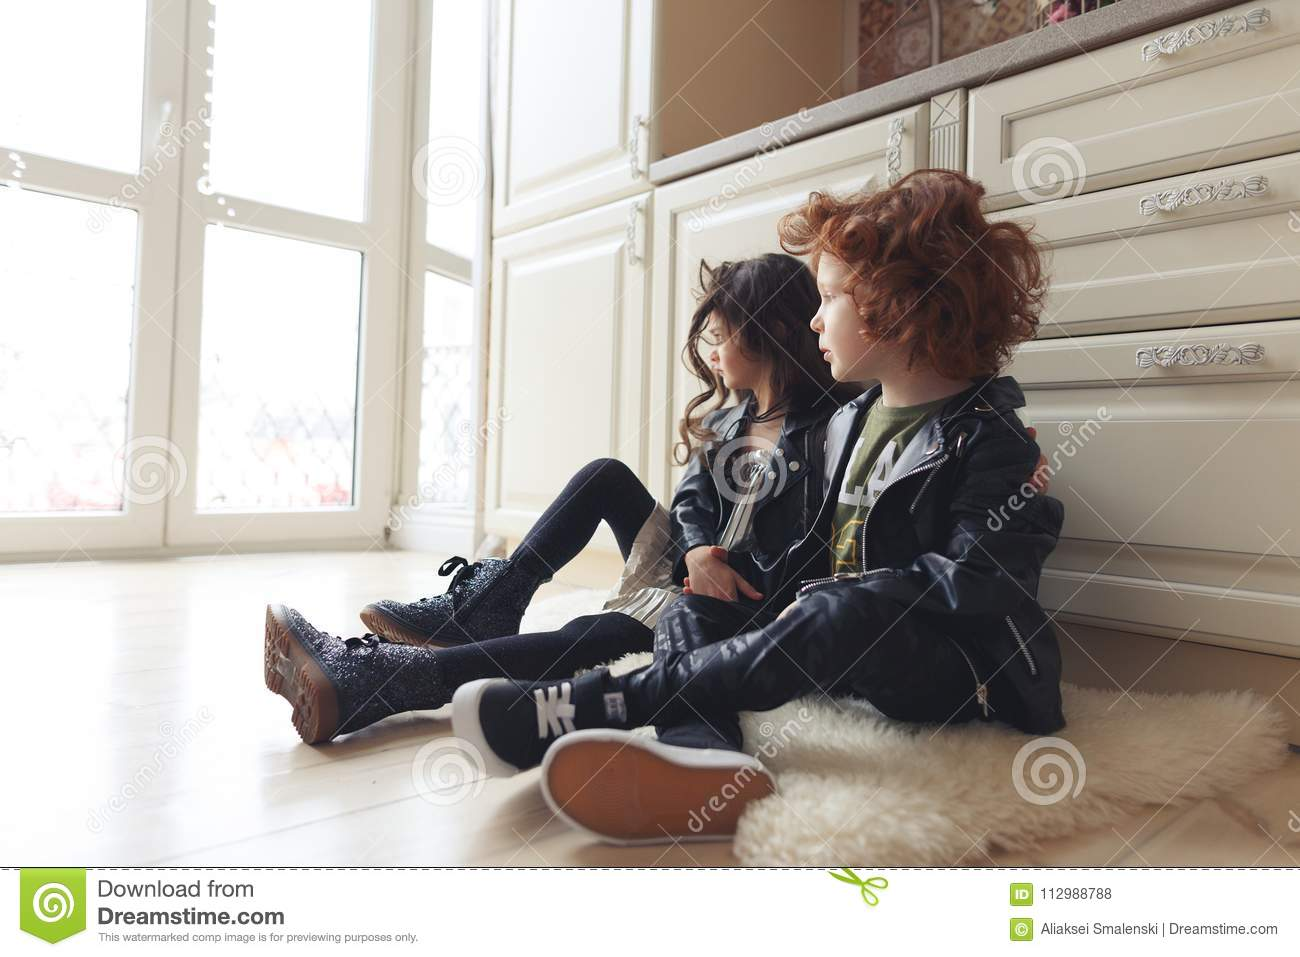 Boy and girl friends sit together on the floor